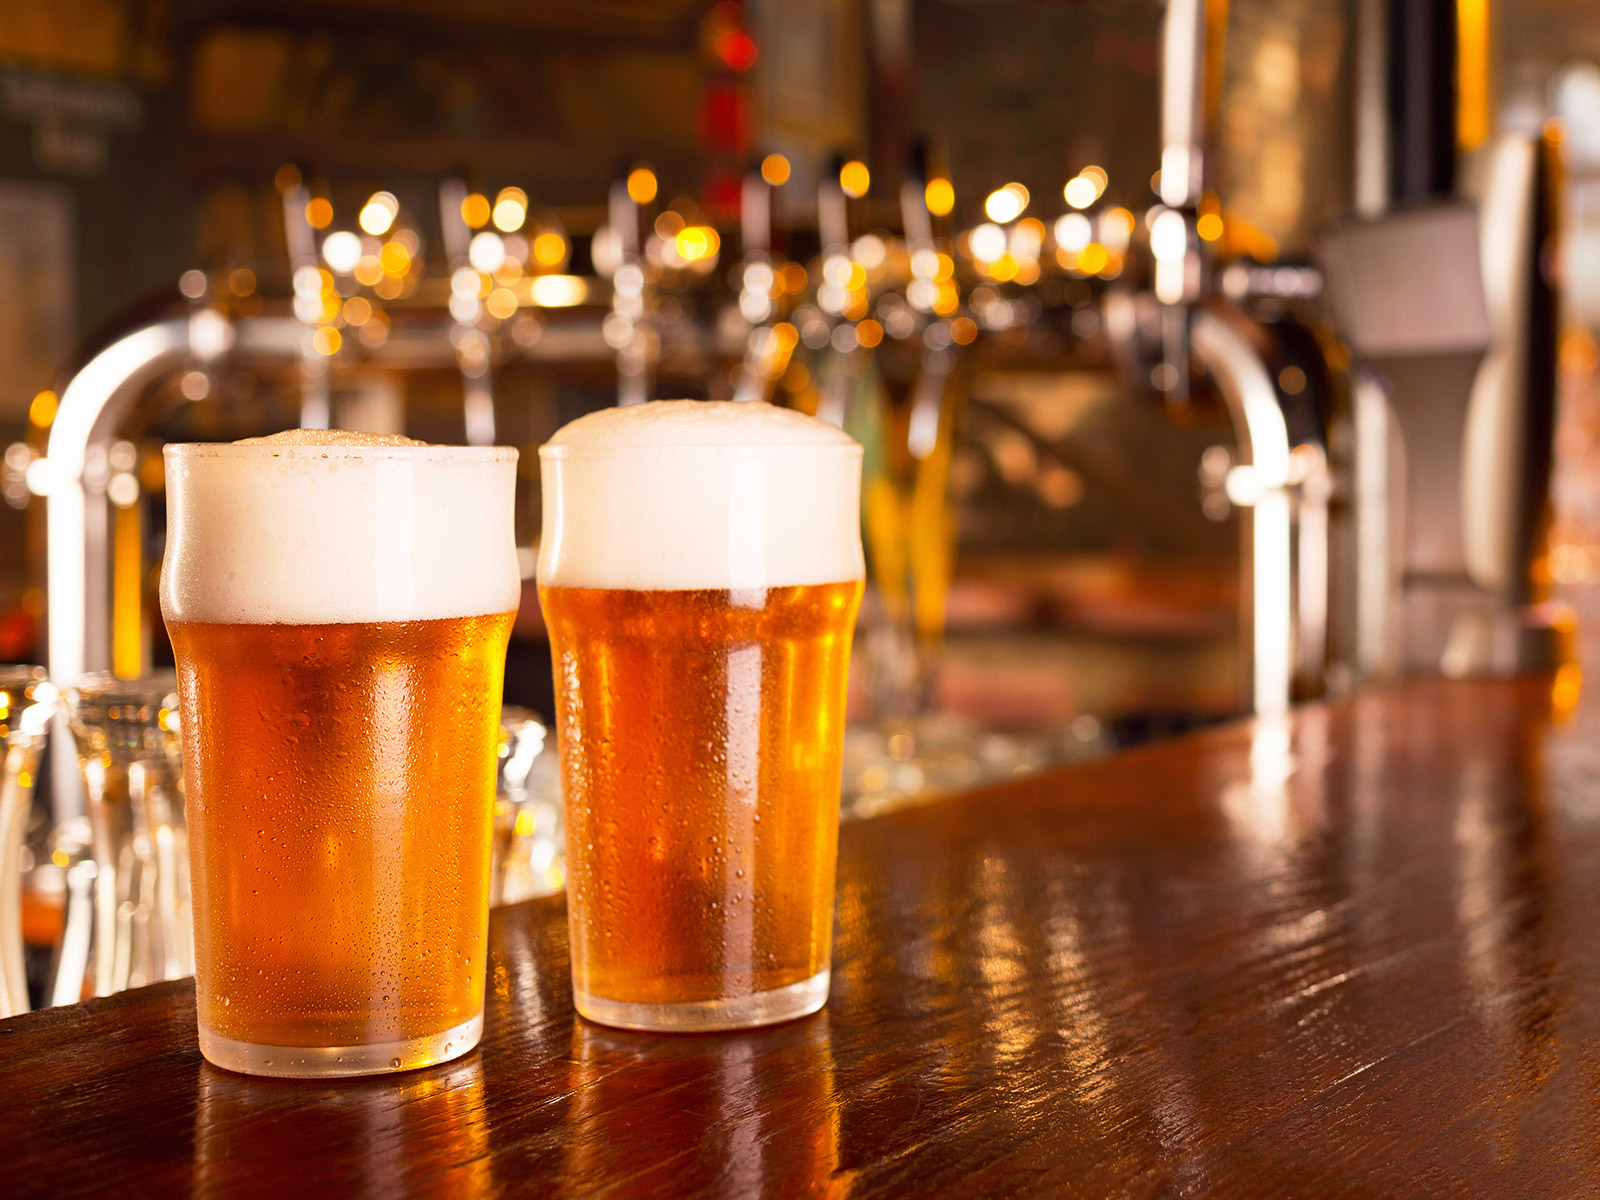 british beer prices rising